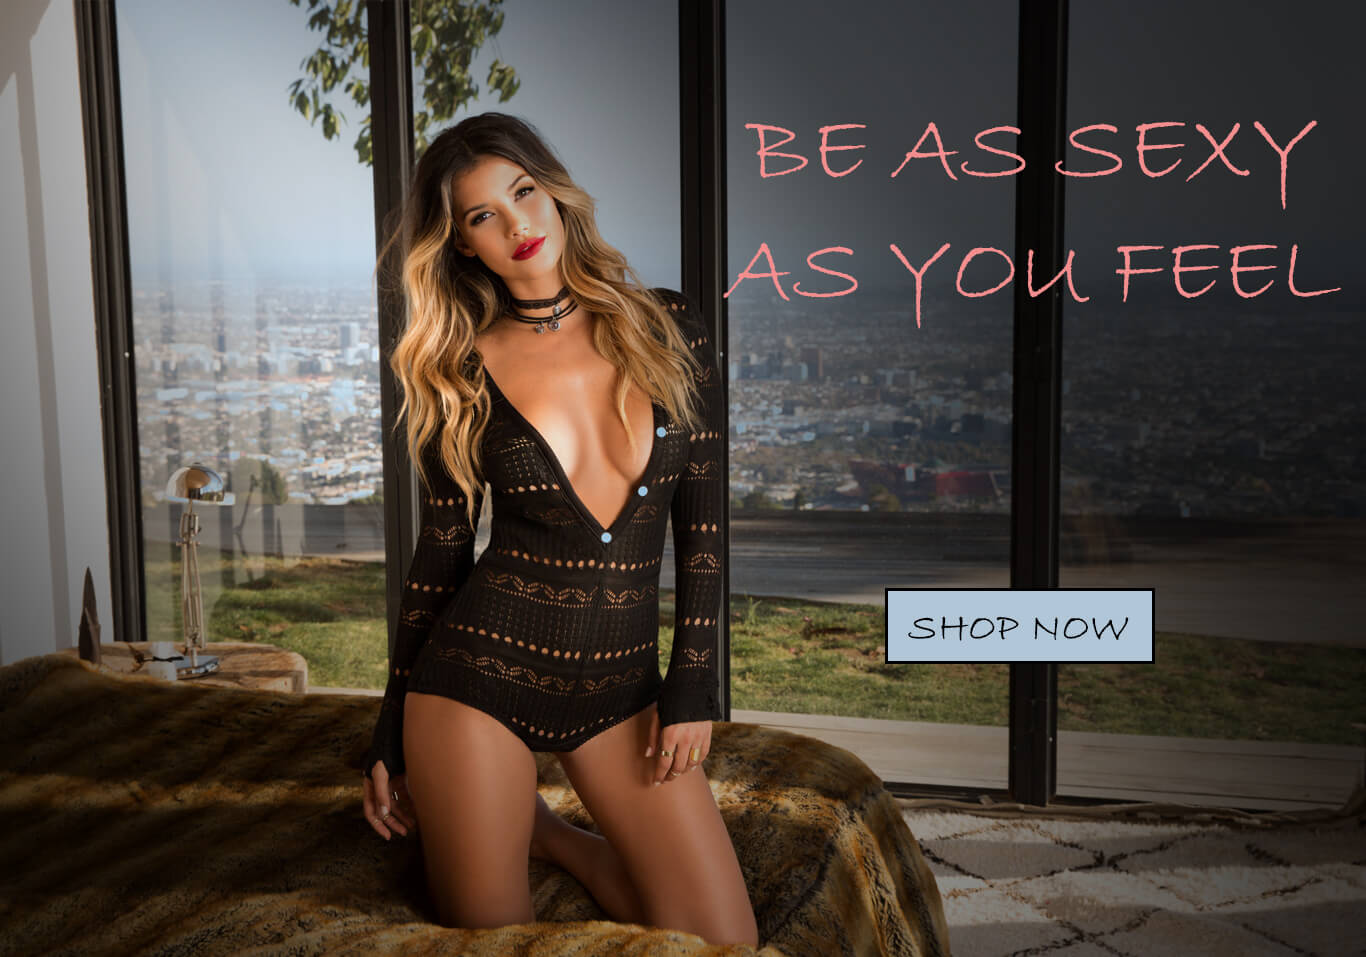 Shop Sales at Blisslingerie.net